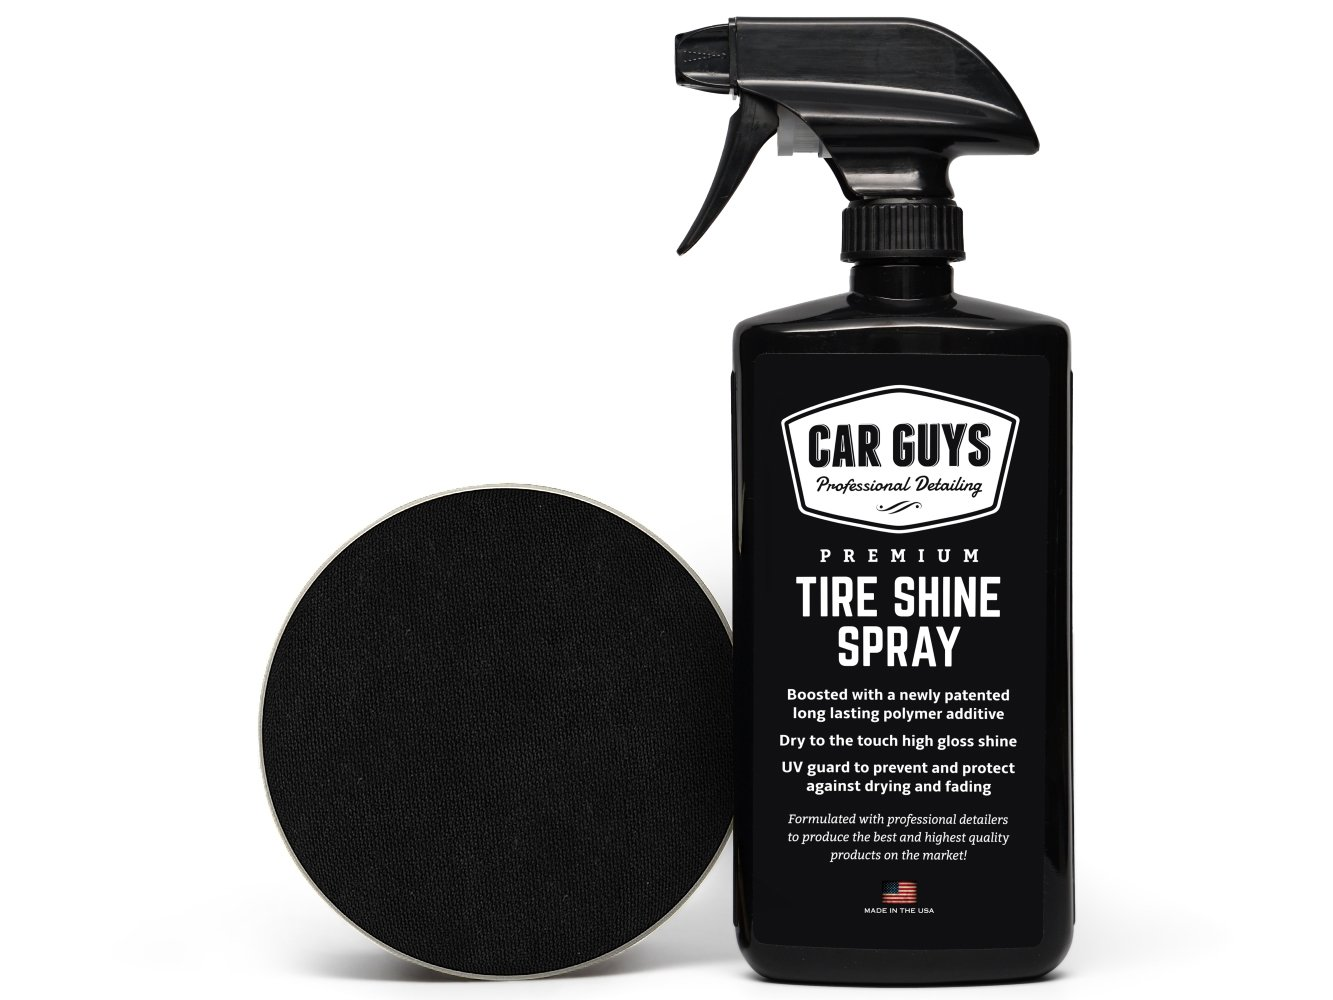 Tire Shine Spray 1 Gallon Bulk Refill – Best Tire Dressing Car Care for Car Tires After a Hand Car Wash – Car Detailing…